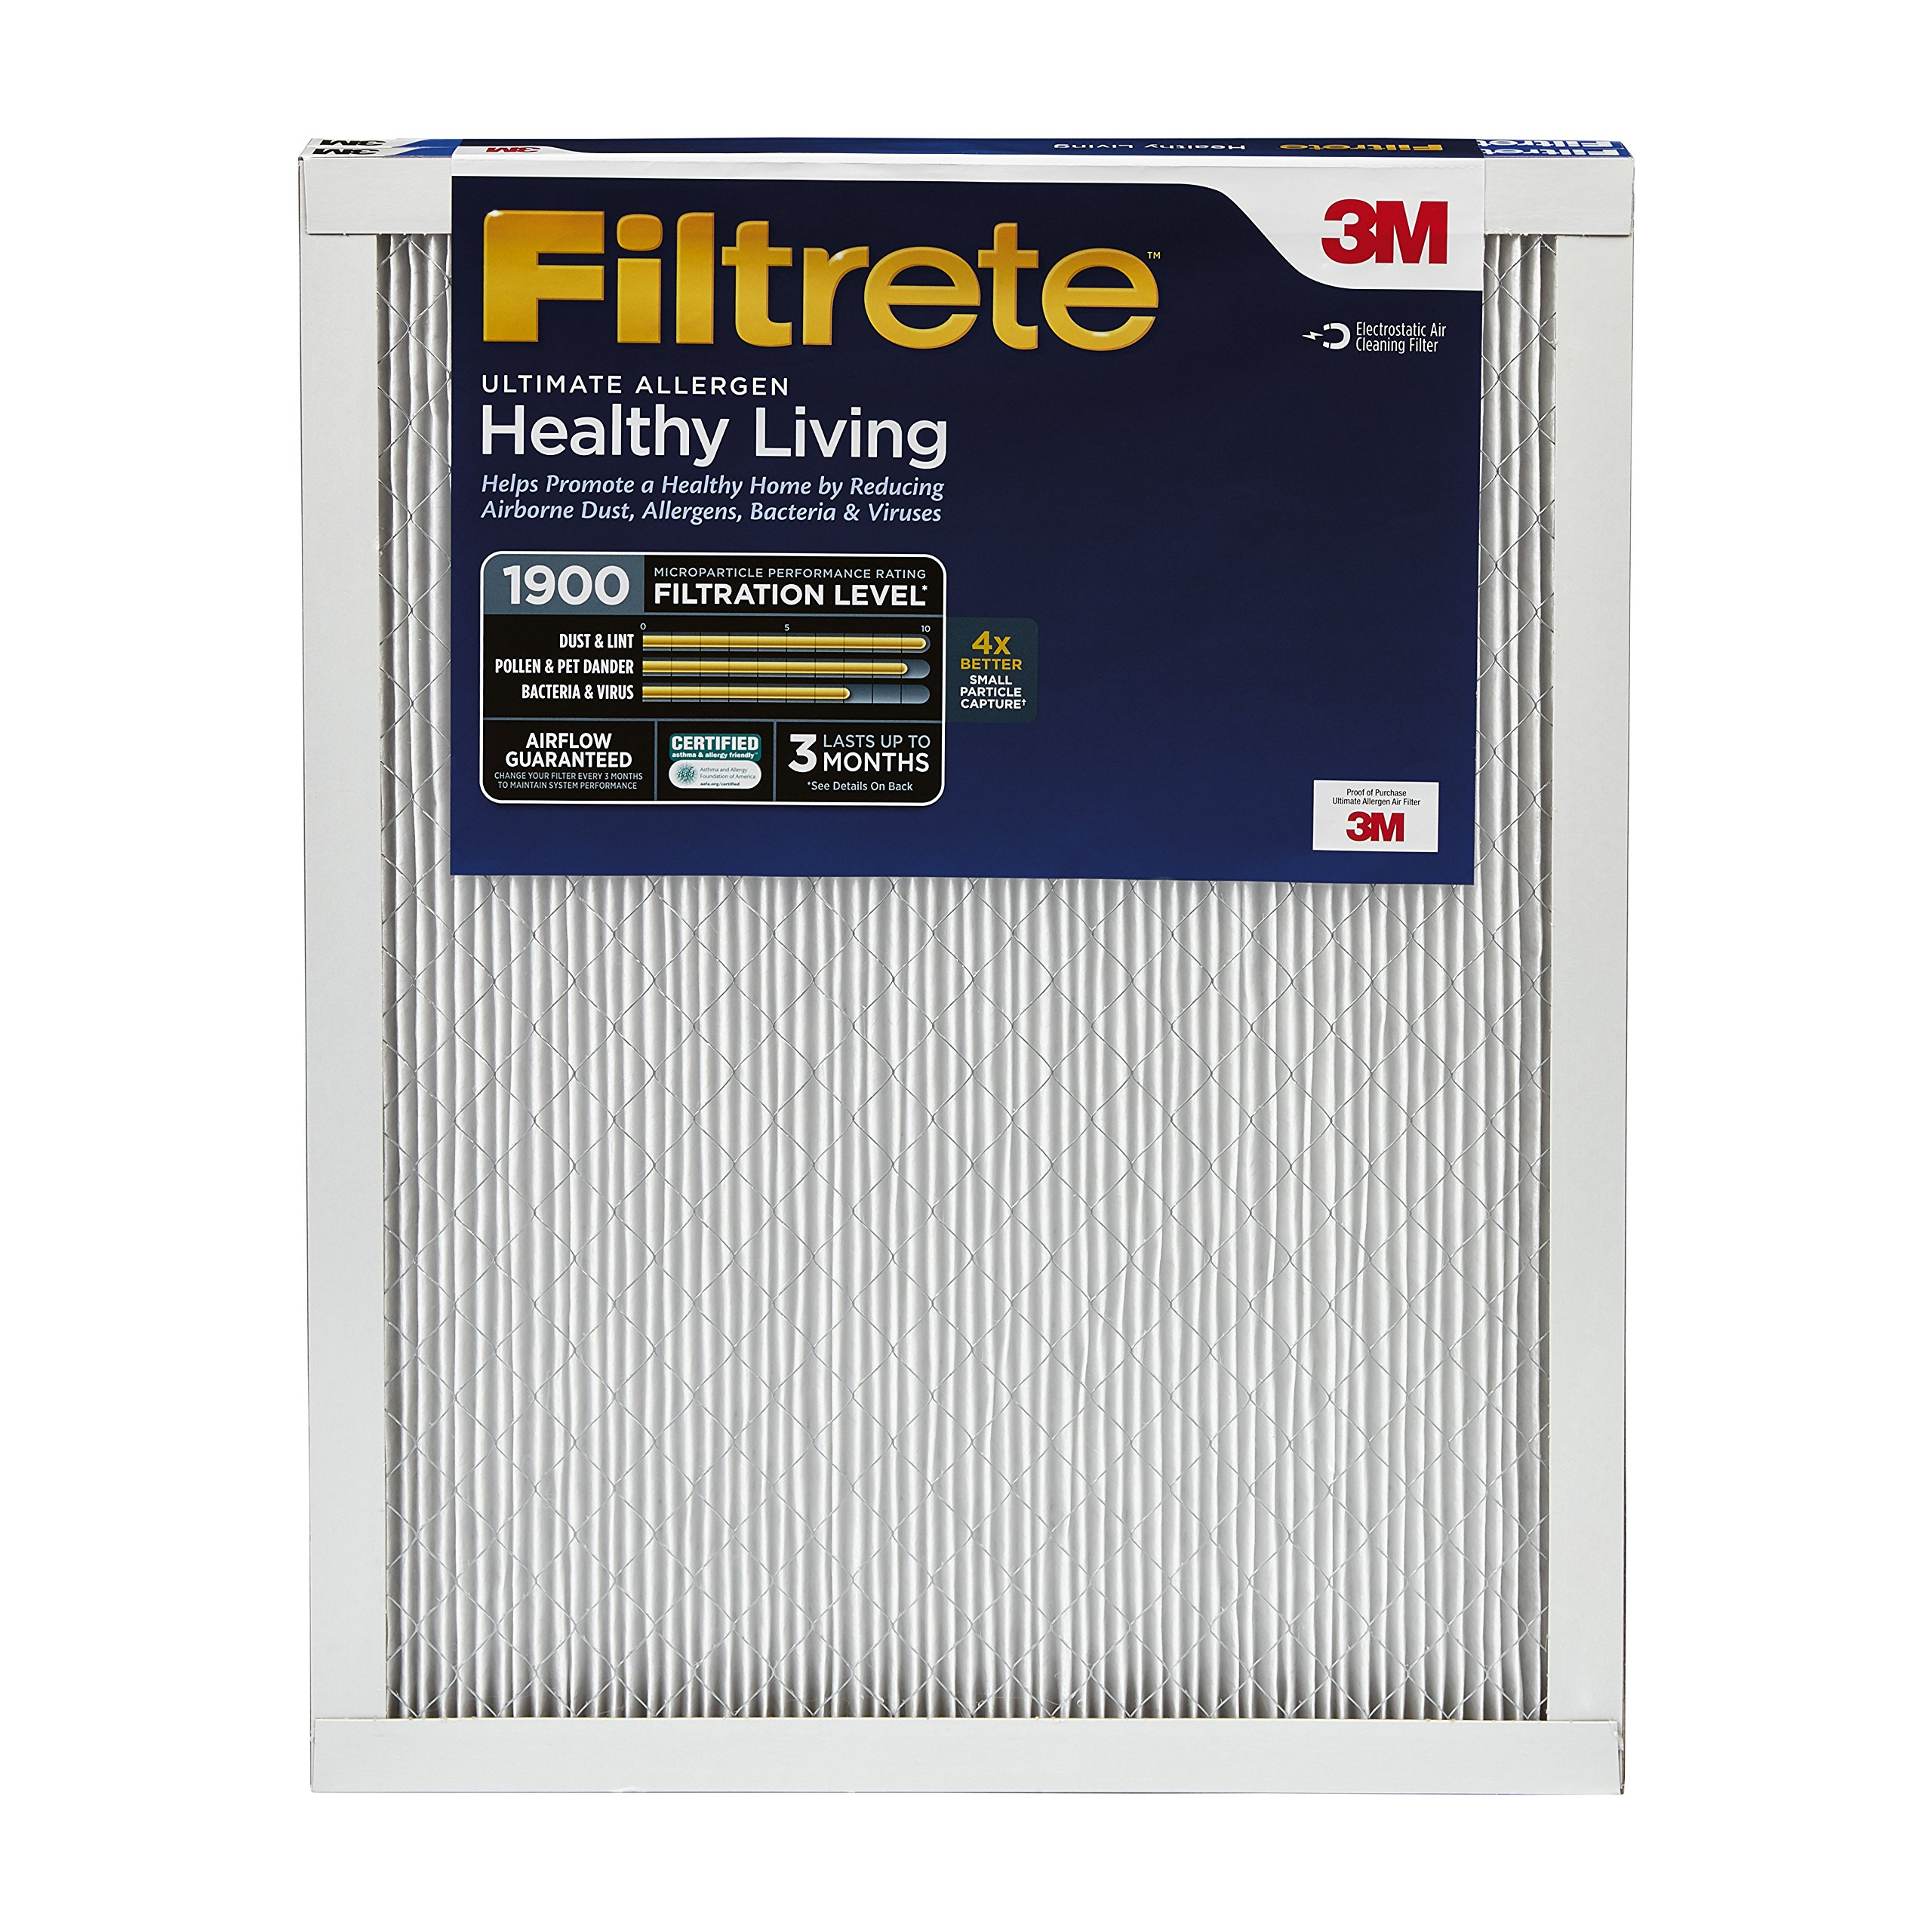 Filtrete MPR 1900 14 x 30 x 1 Healthy Living Ultimate Allergen Reduction AC Furnace Air Filter, Uncompromised Airflow, Captures Fine Inhalable Particles like Bacteria & Viruses, 2-Pack